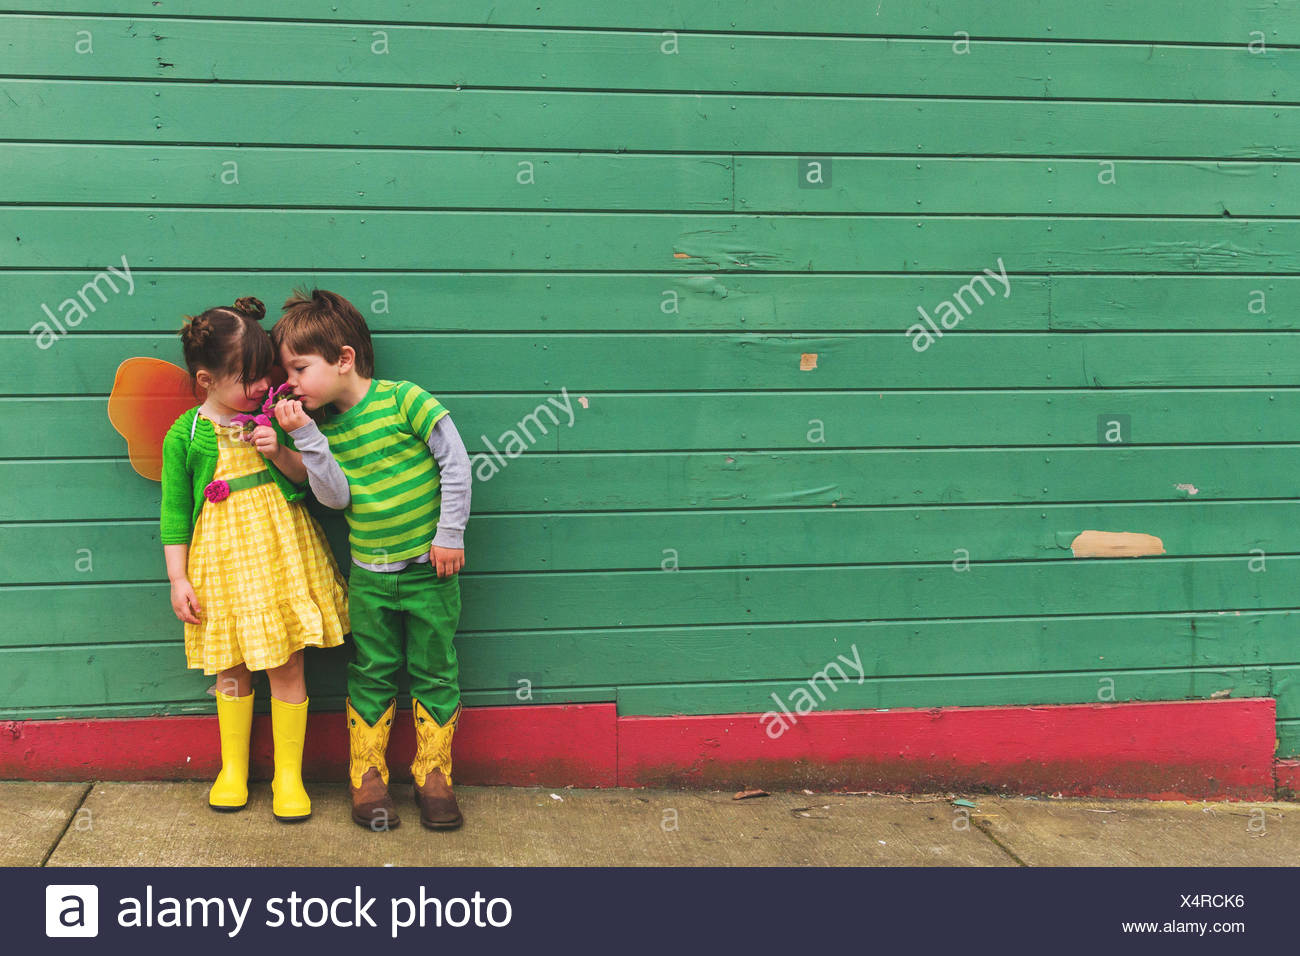 Boy and girl dressed up as a caterpillar and butterfly smelling flowers - Stock Image